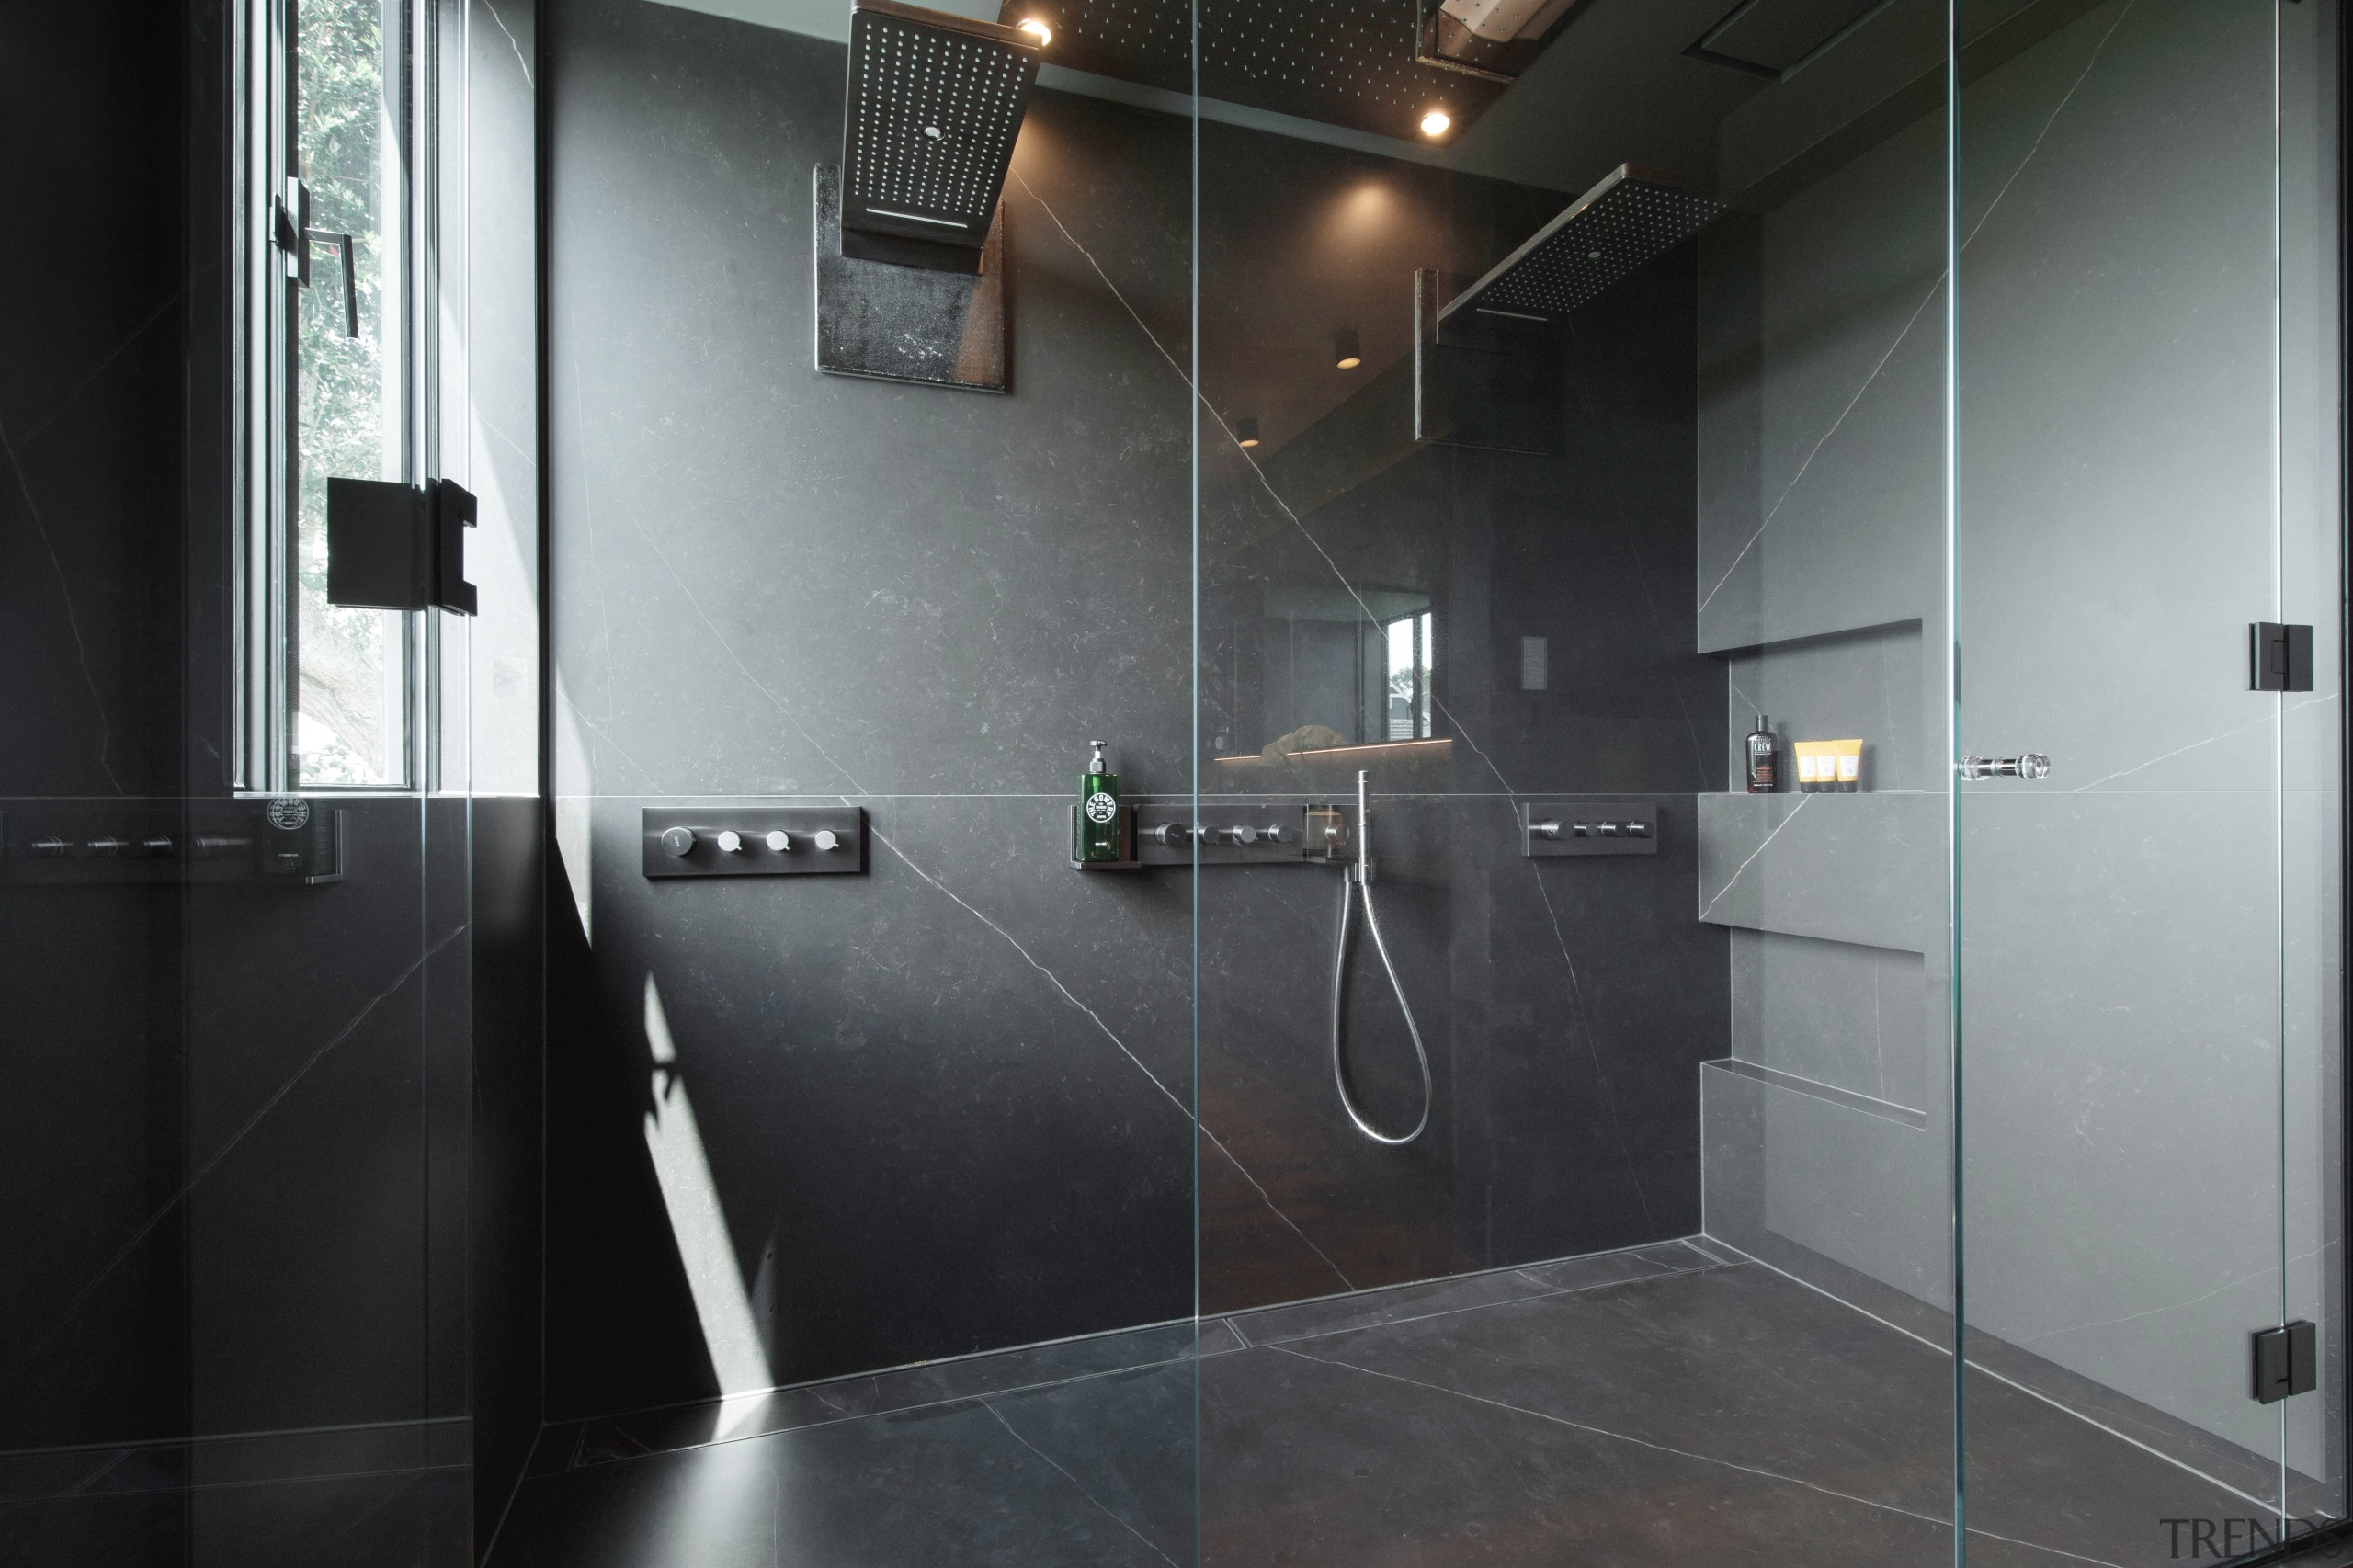 The double shower is equipped with overhead Axor